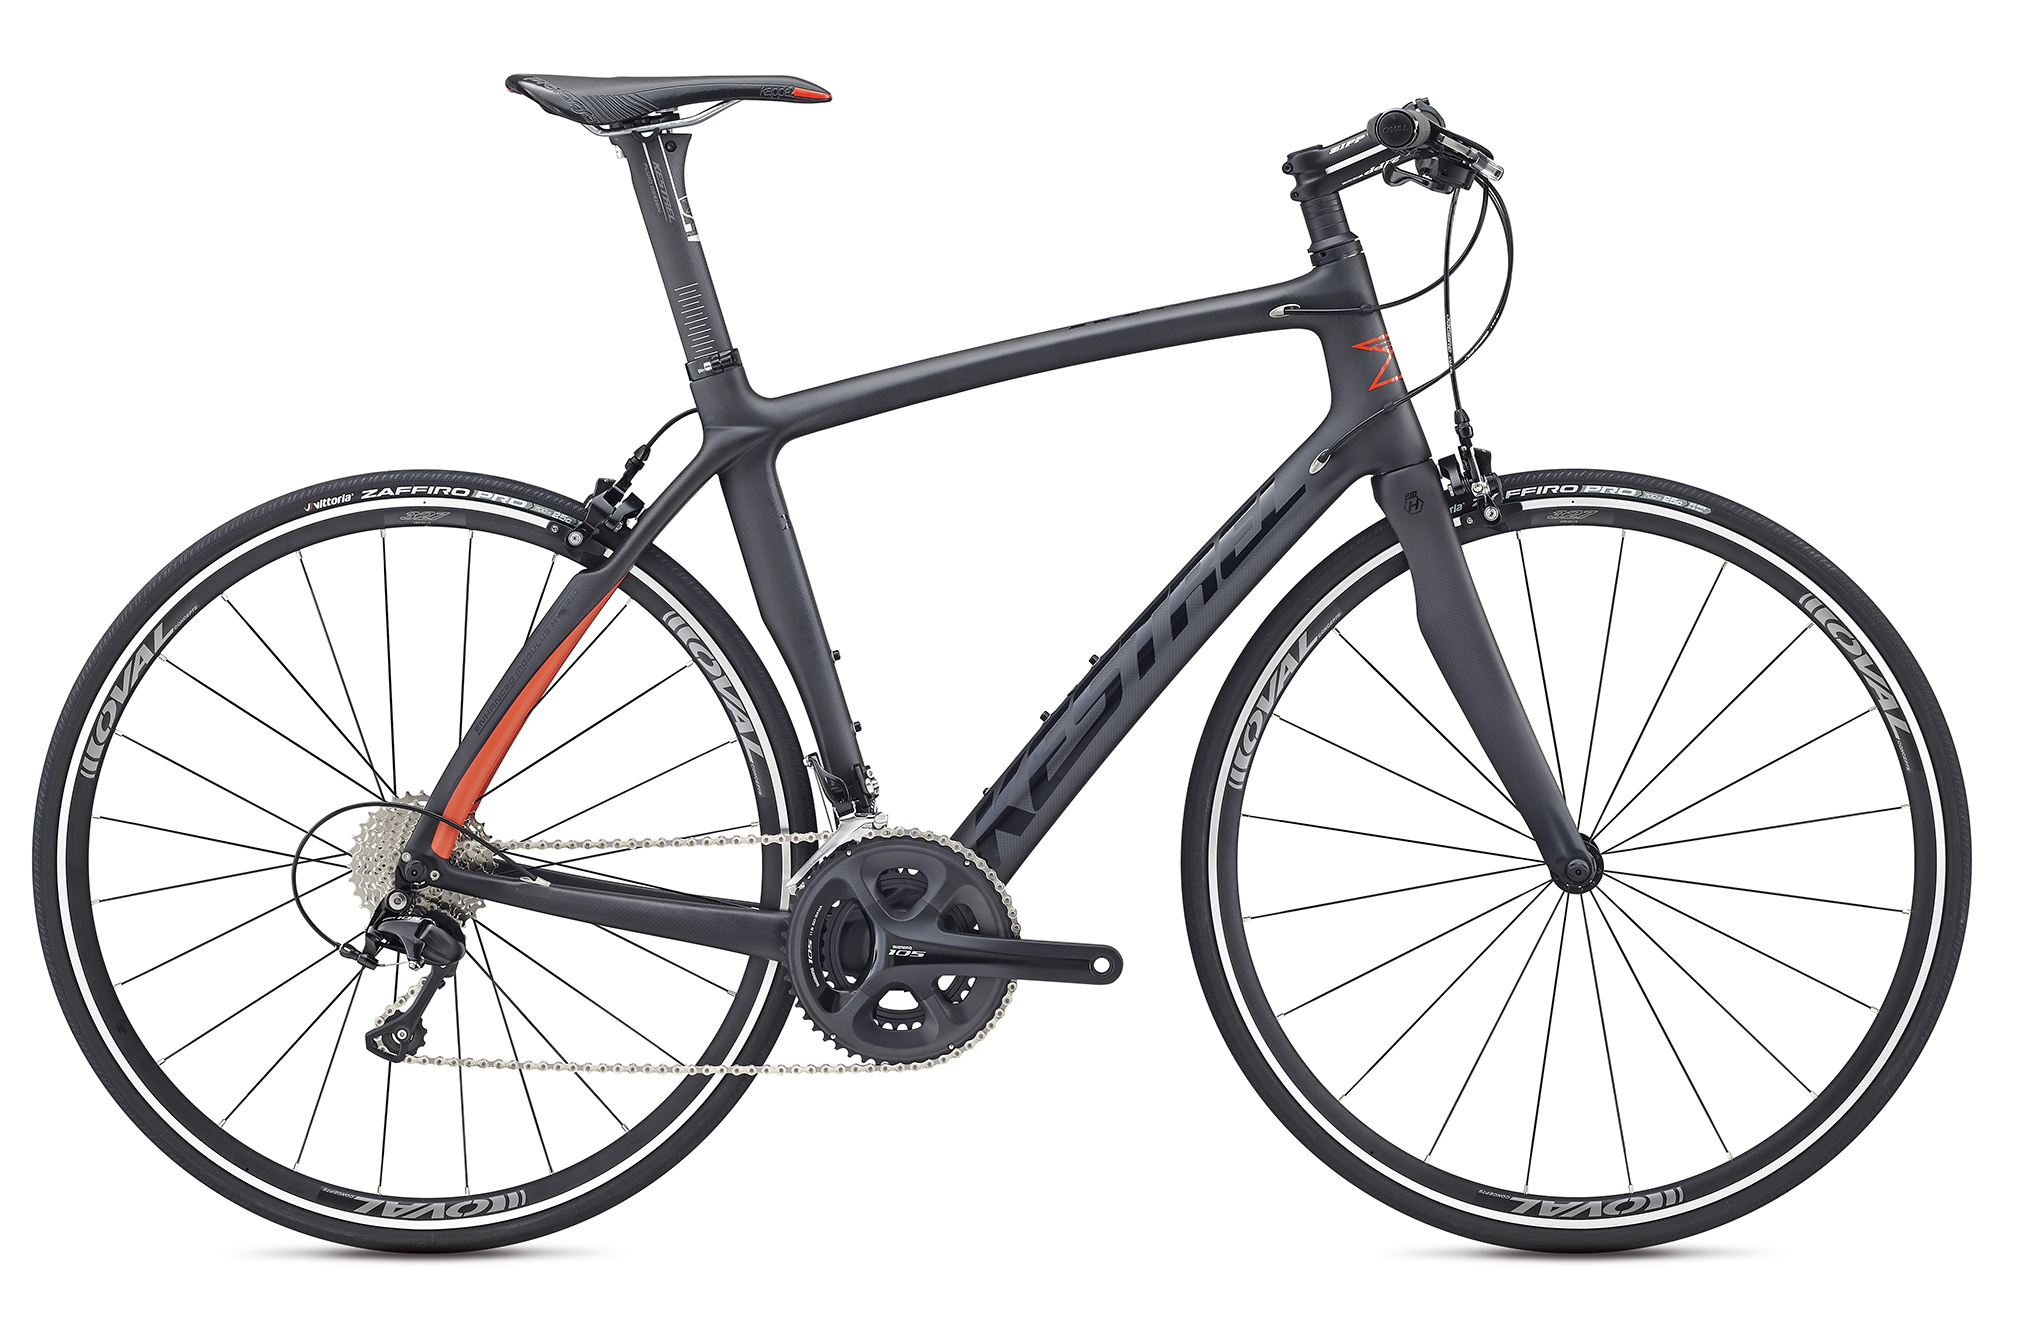 RT1000 105 FLAT-BAR - KESTREL 2017